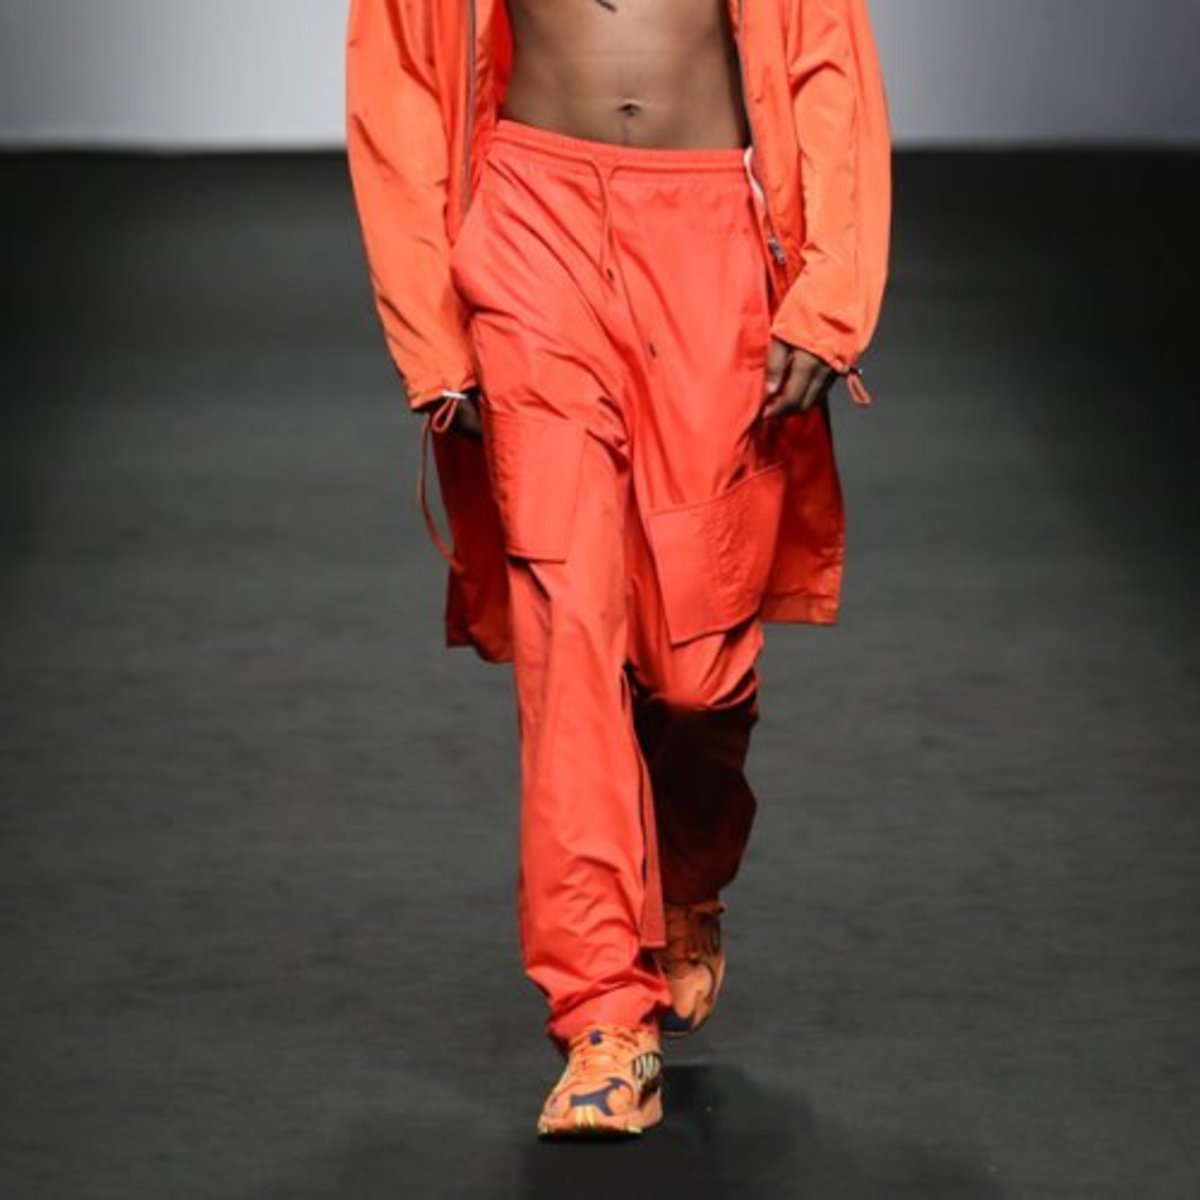 ORANGE LAYERED VELCRO PANTS